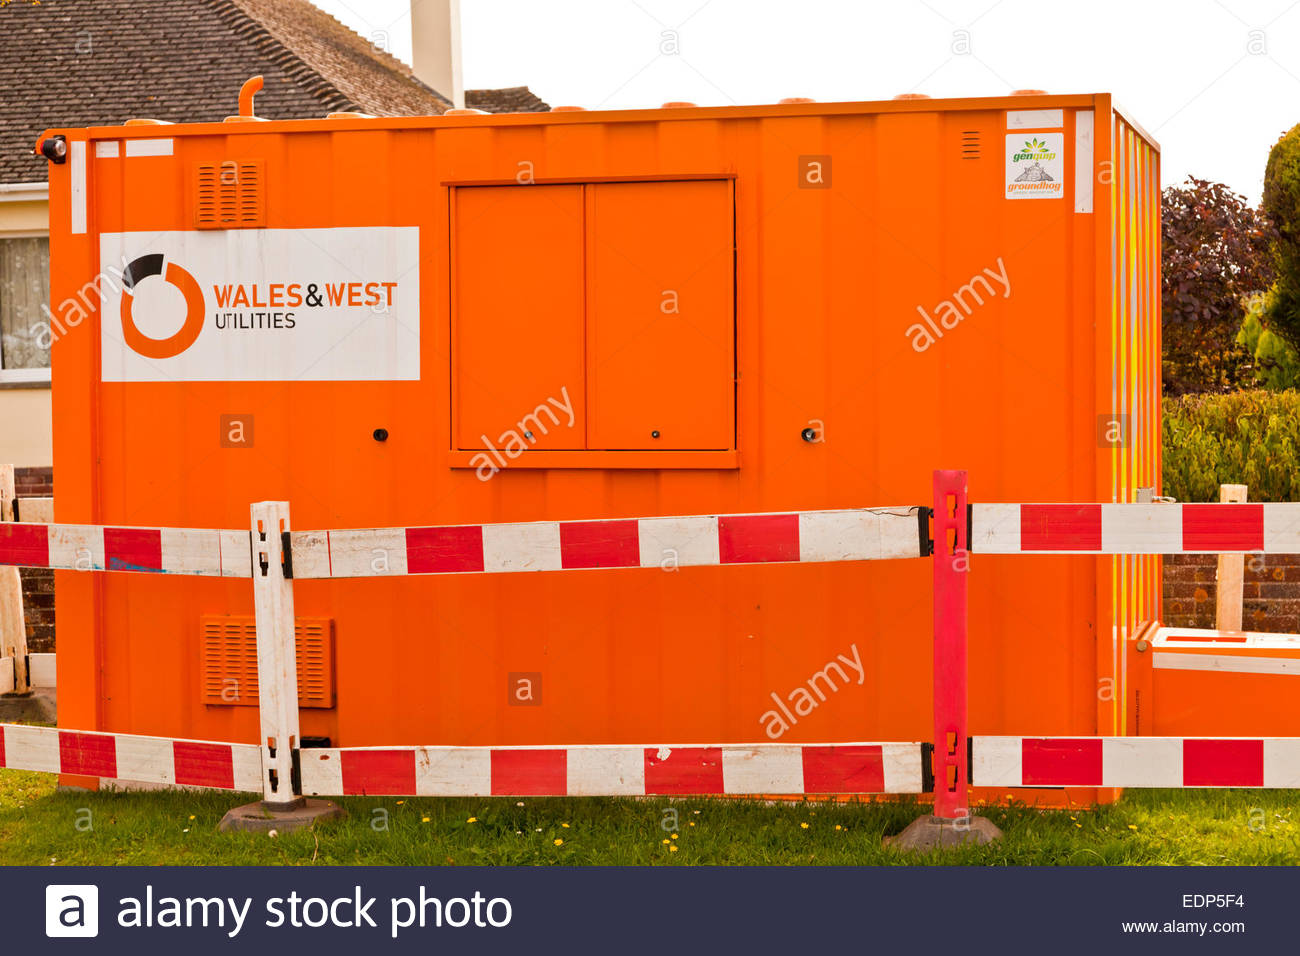 Modern version of the 'workman's hut' for Wales & West Utilities surrounded by barriers on grass - Stock Image